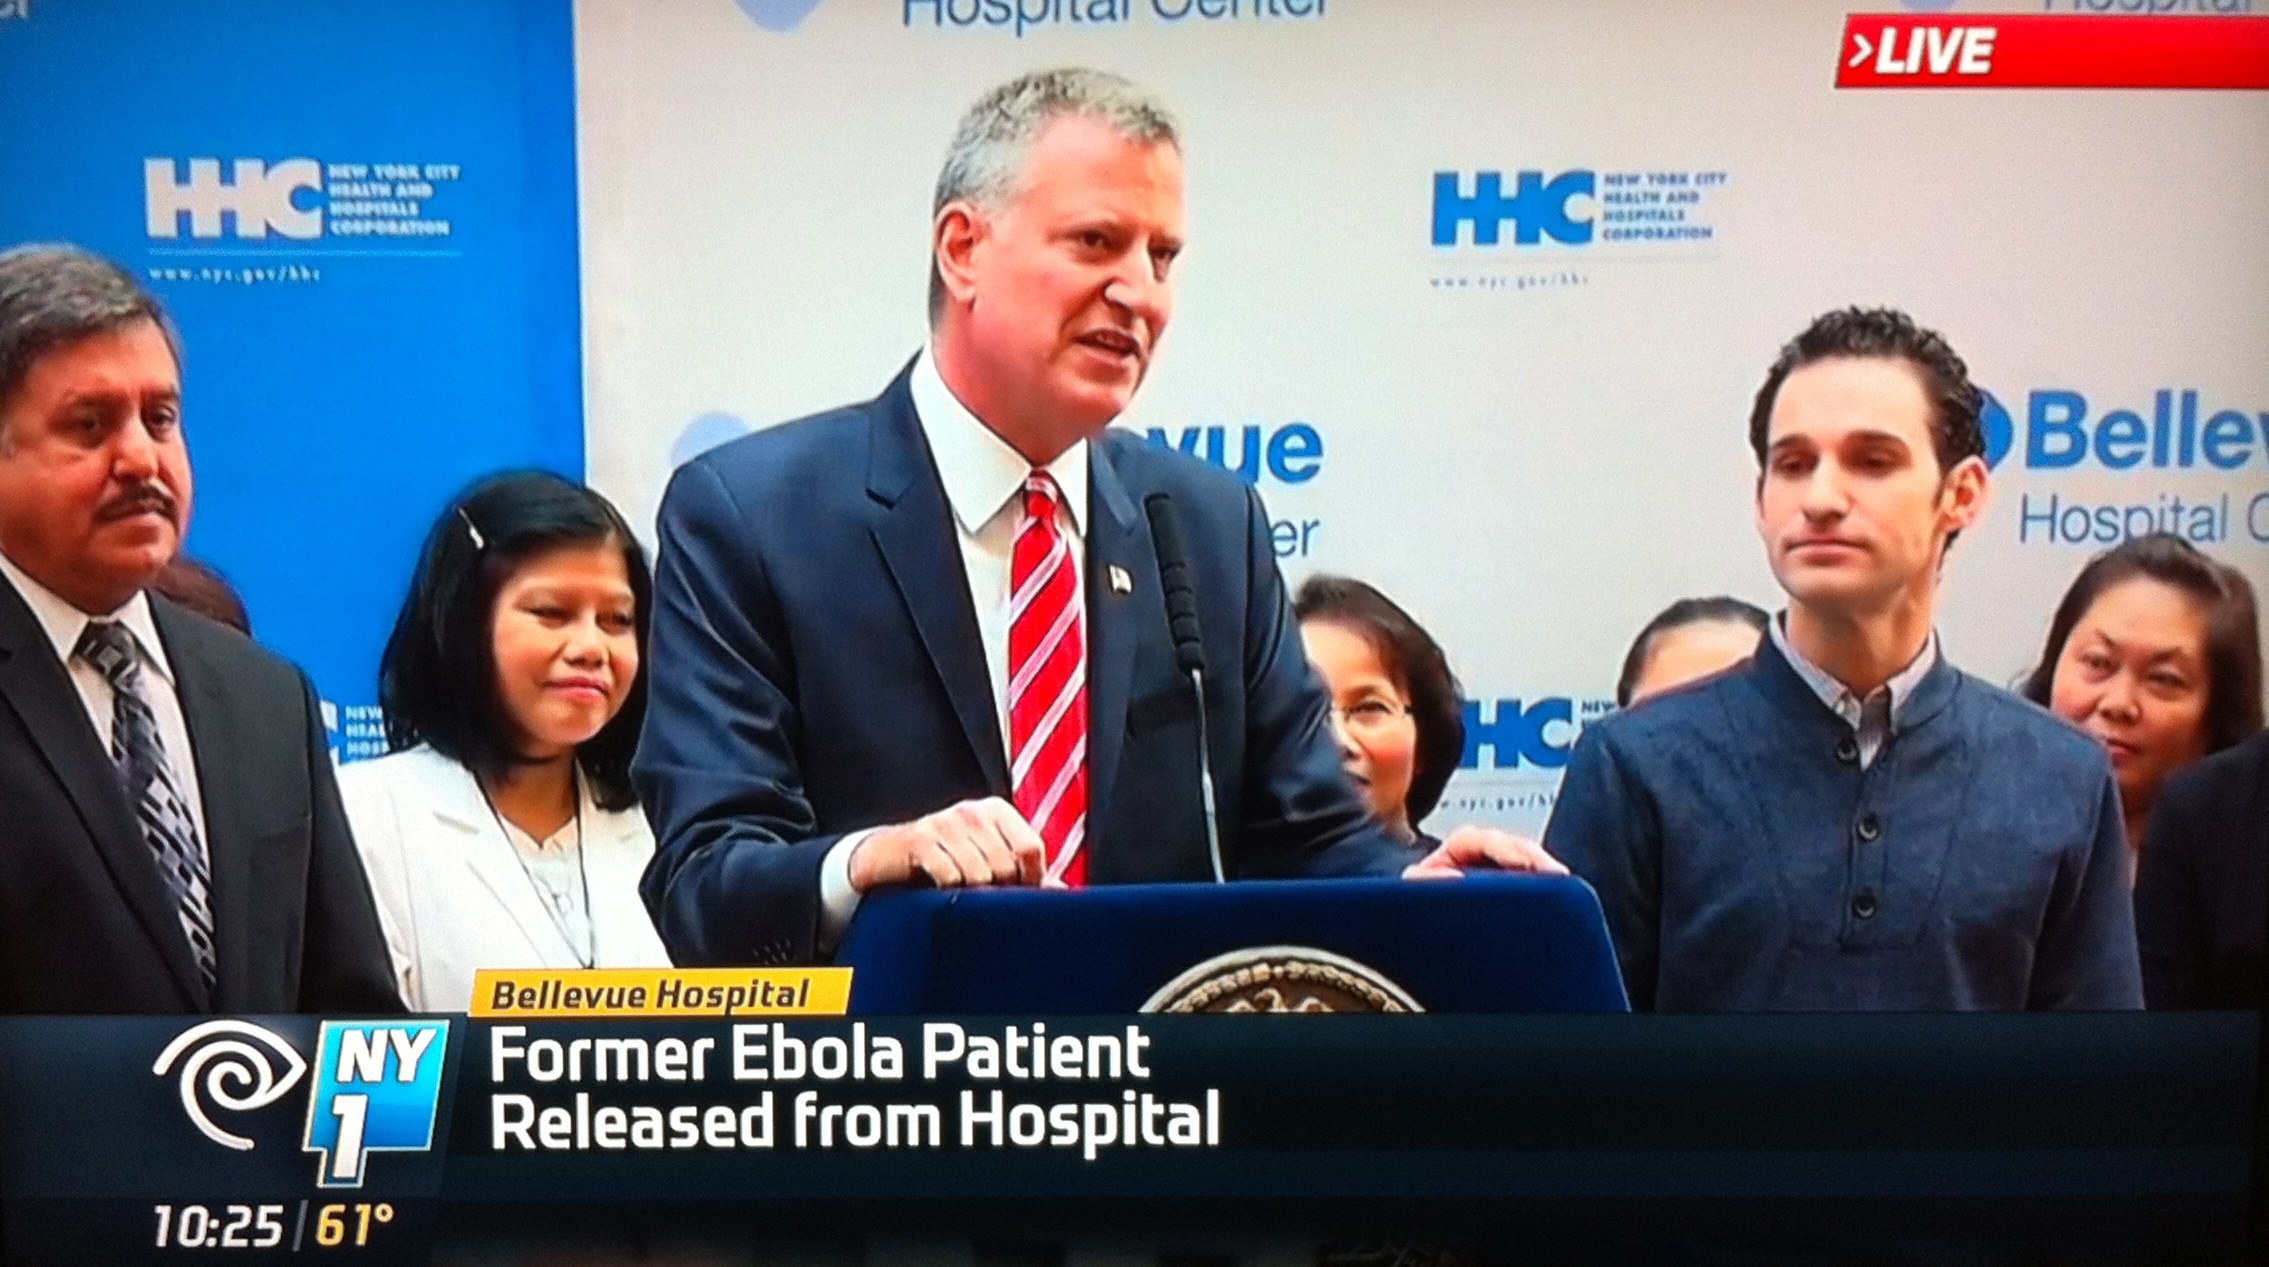 New York City Mayor Bill de Blasio speaking on the occasion of the hospital discharge of Dr. Daniel Spencer, right, the first person to be treated for Ebola in New York City.  Source :  NY1 Screen Shot